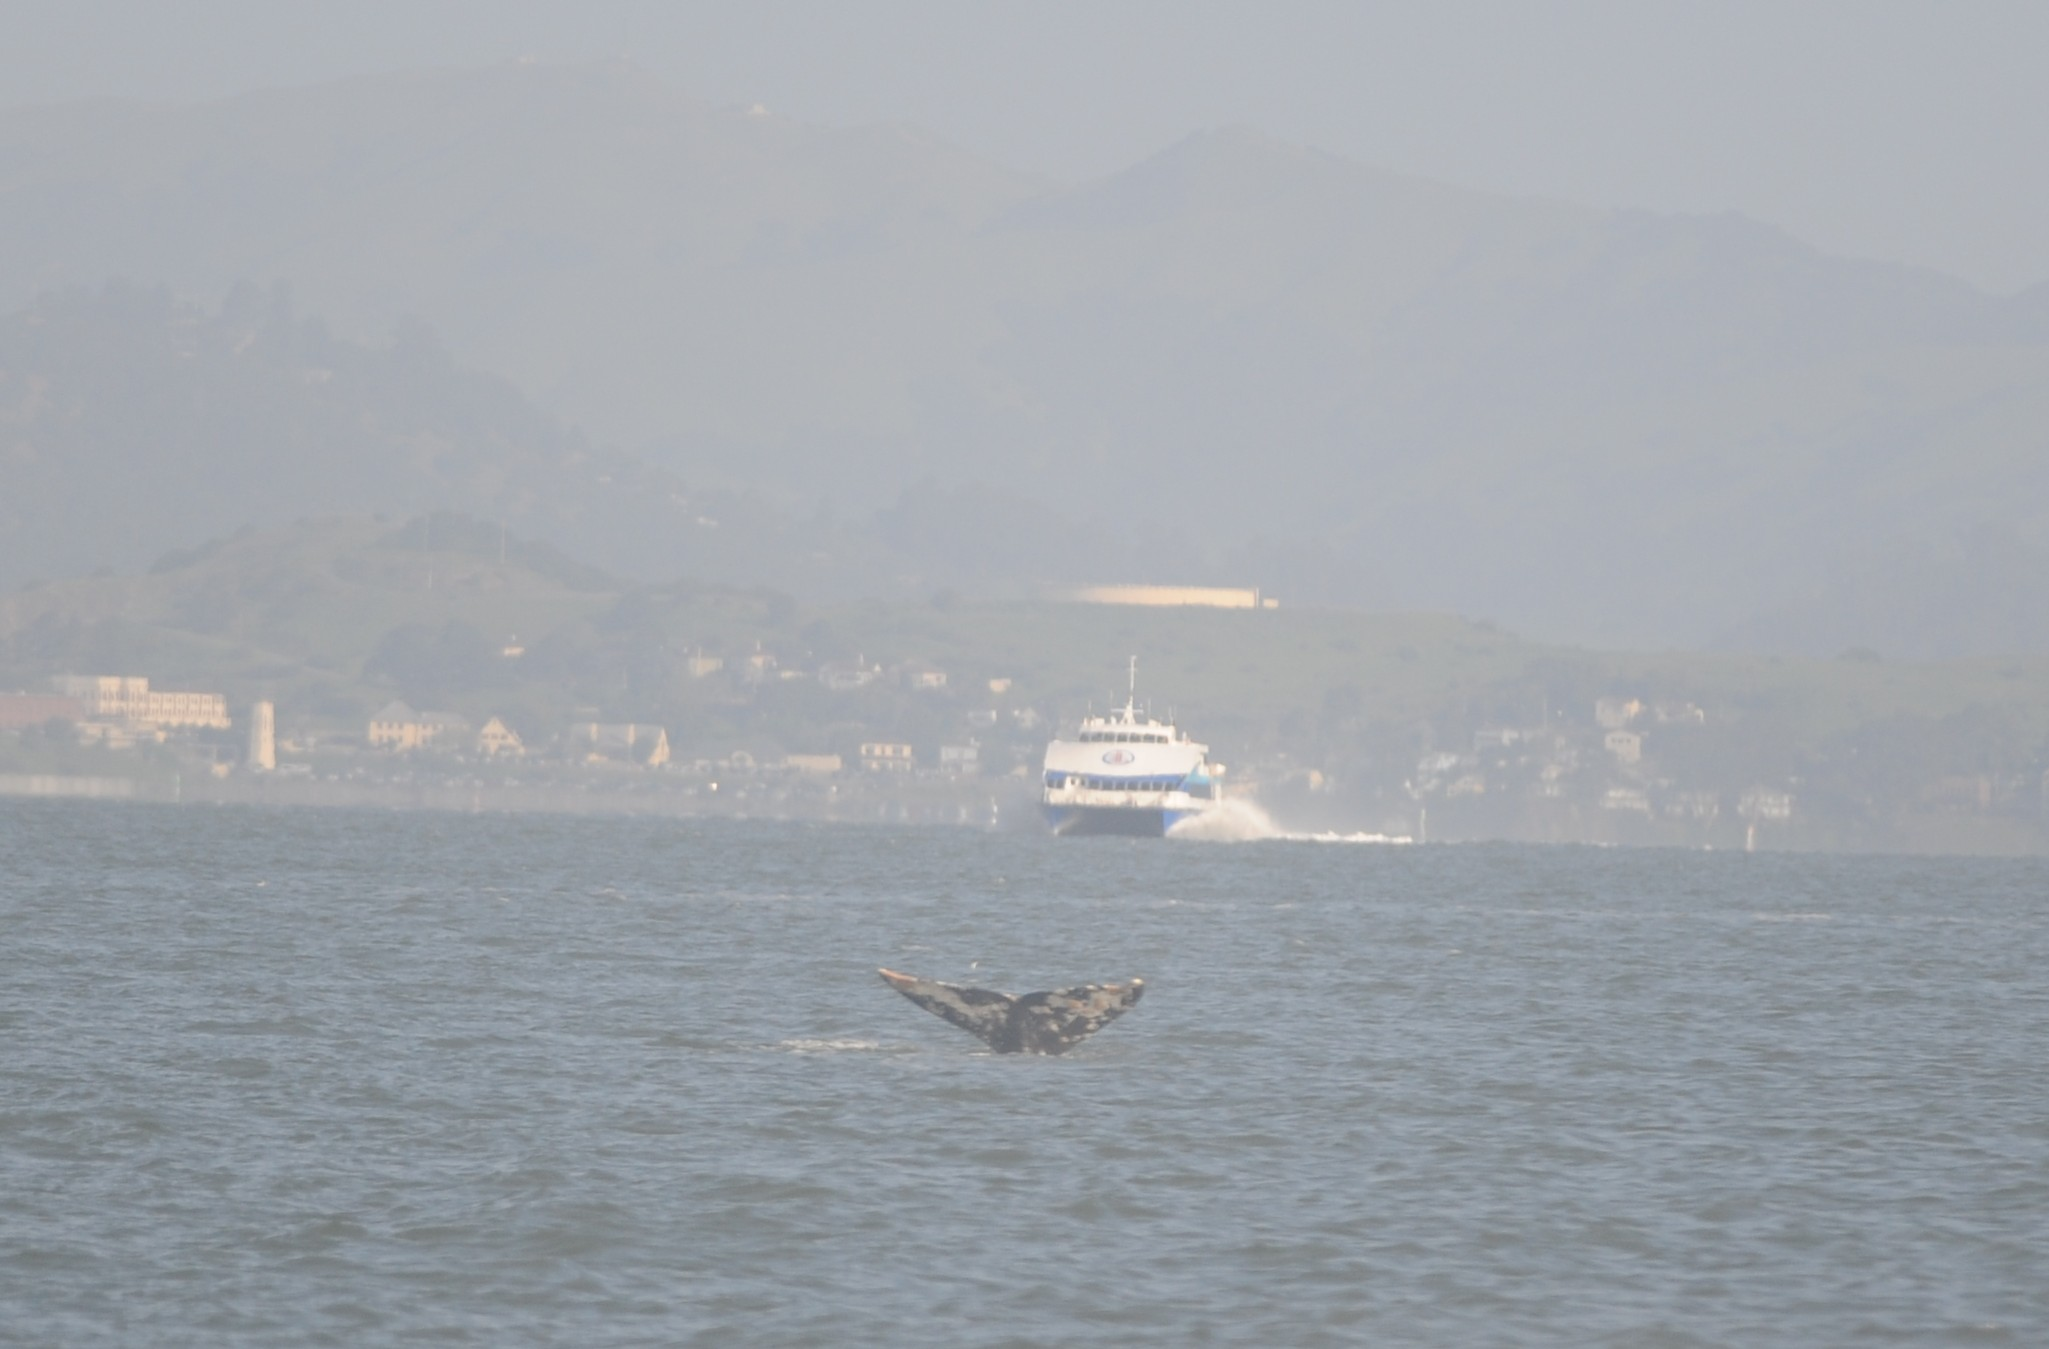 A ferry approaches a whale.